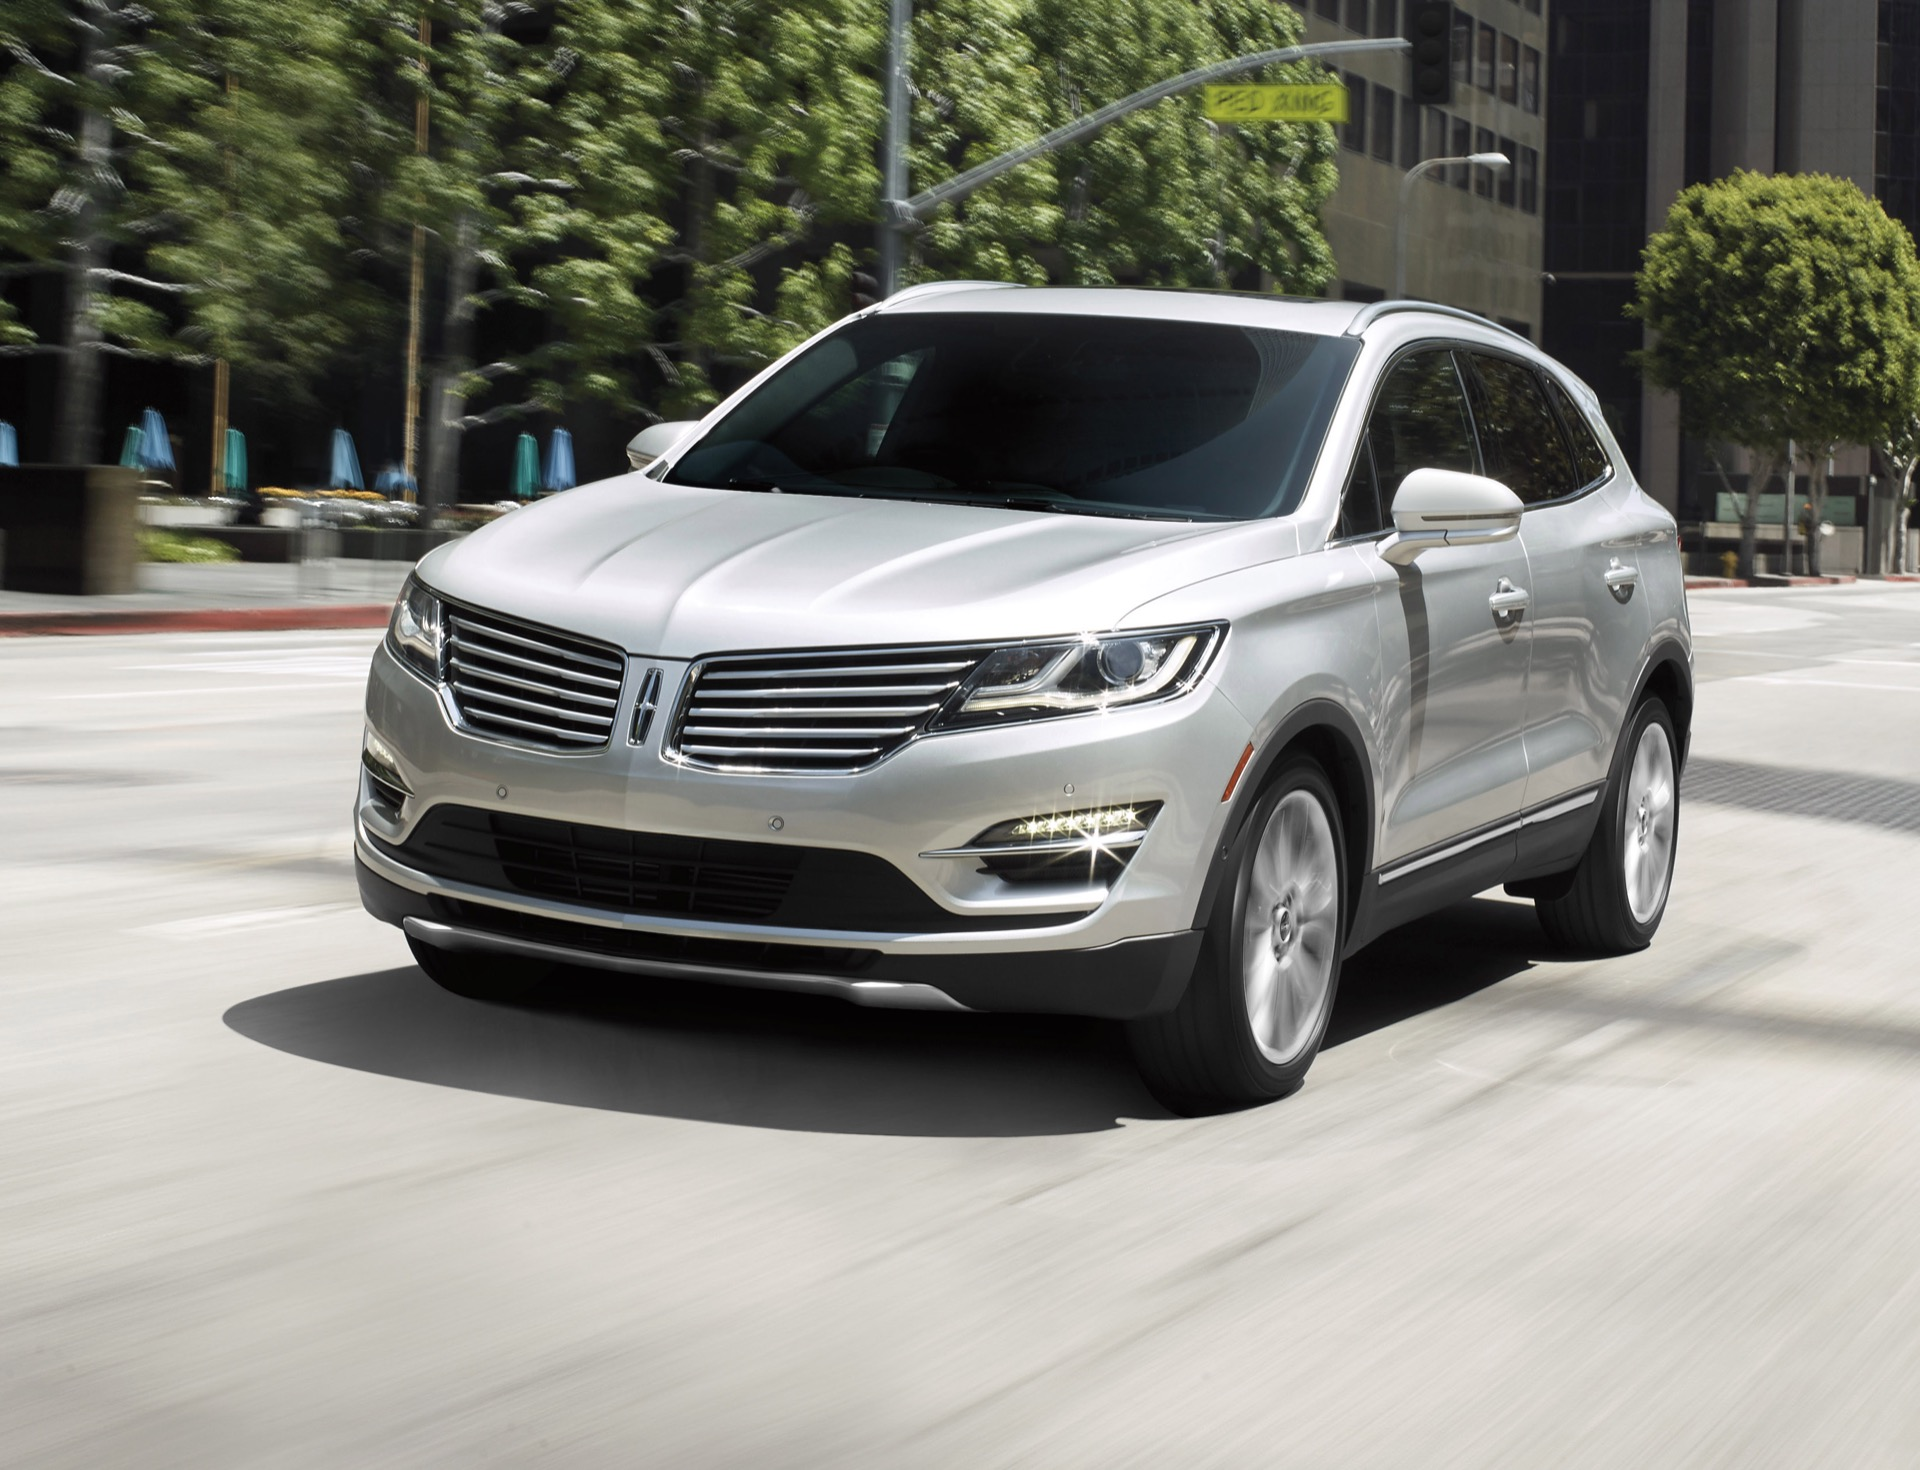 2016 lincoln mkc review ratings specs prices and. Black Bedroom Furniture Sets. Home Design Ideas